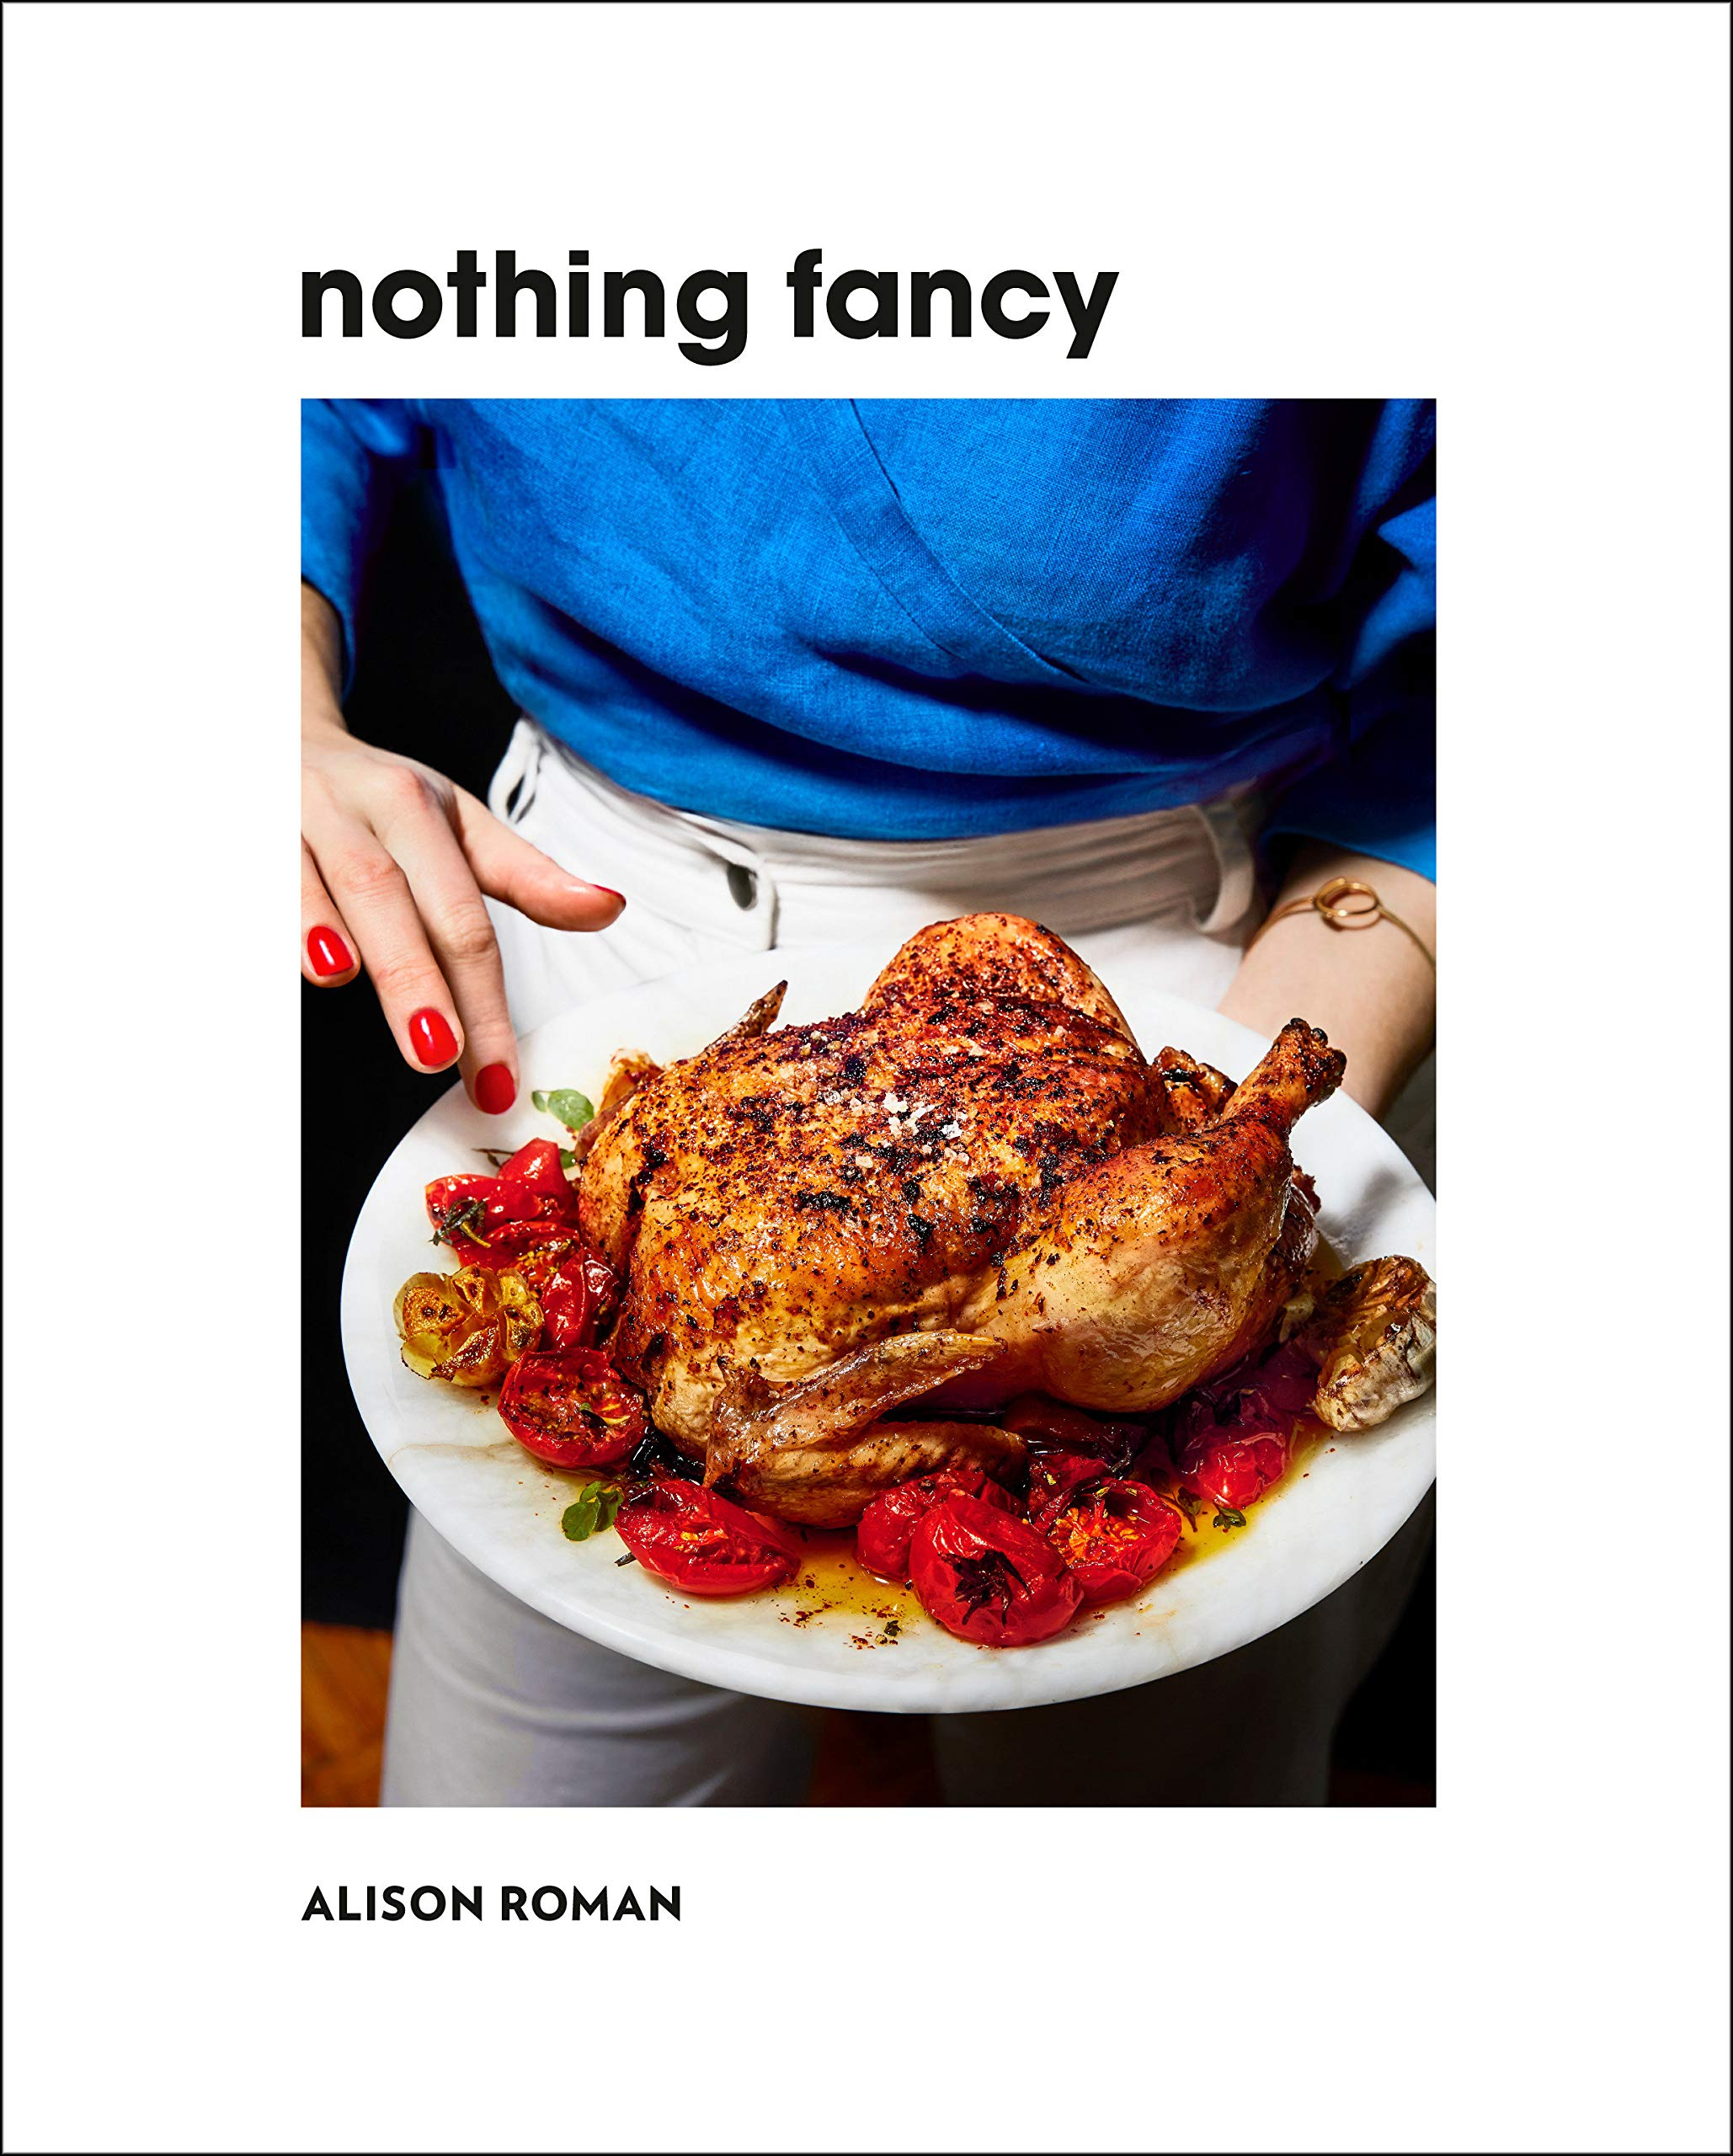 nothing fancy cookbook, gifts for wife